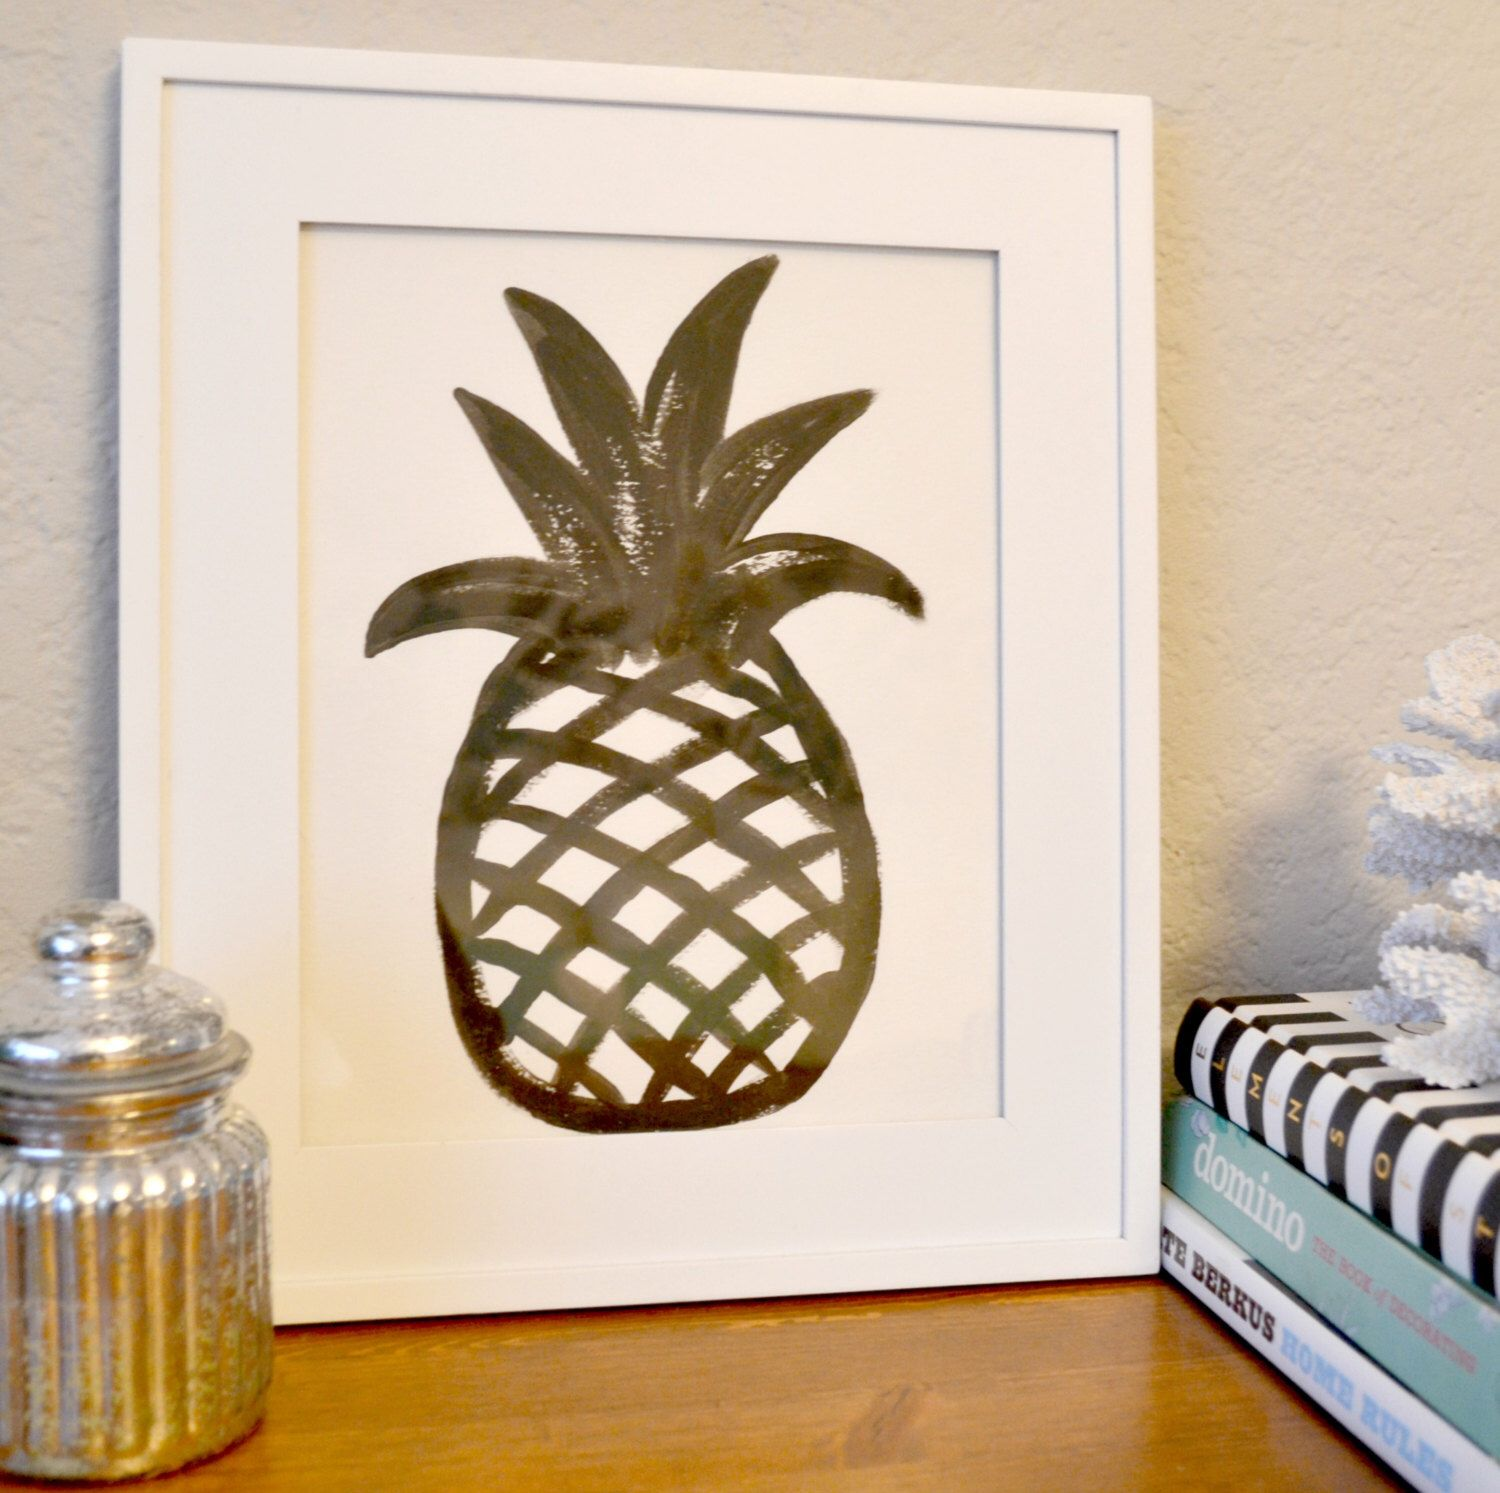 Black and white pineapple acrylic painting gallery wall art door